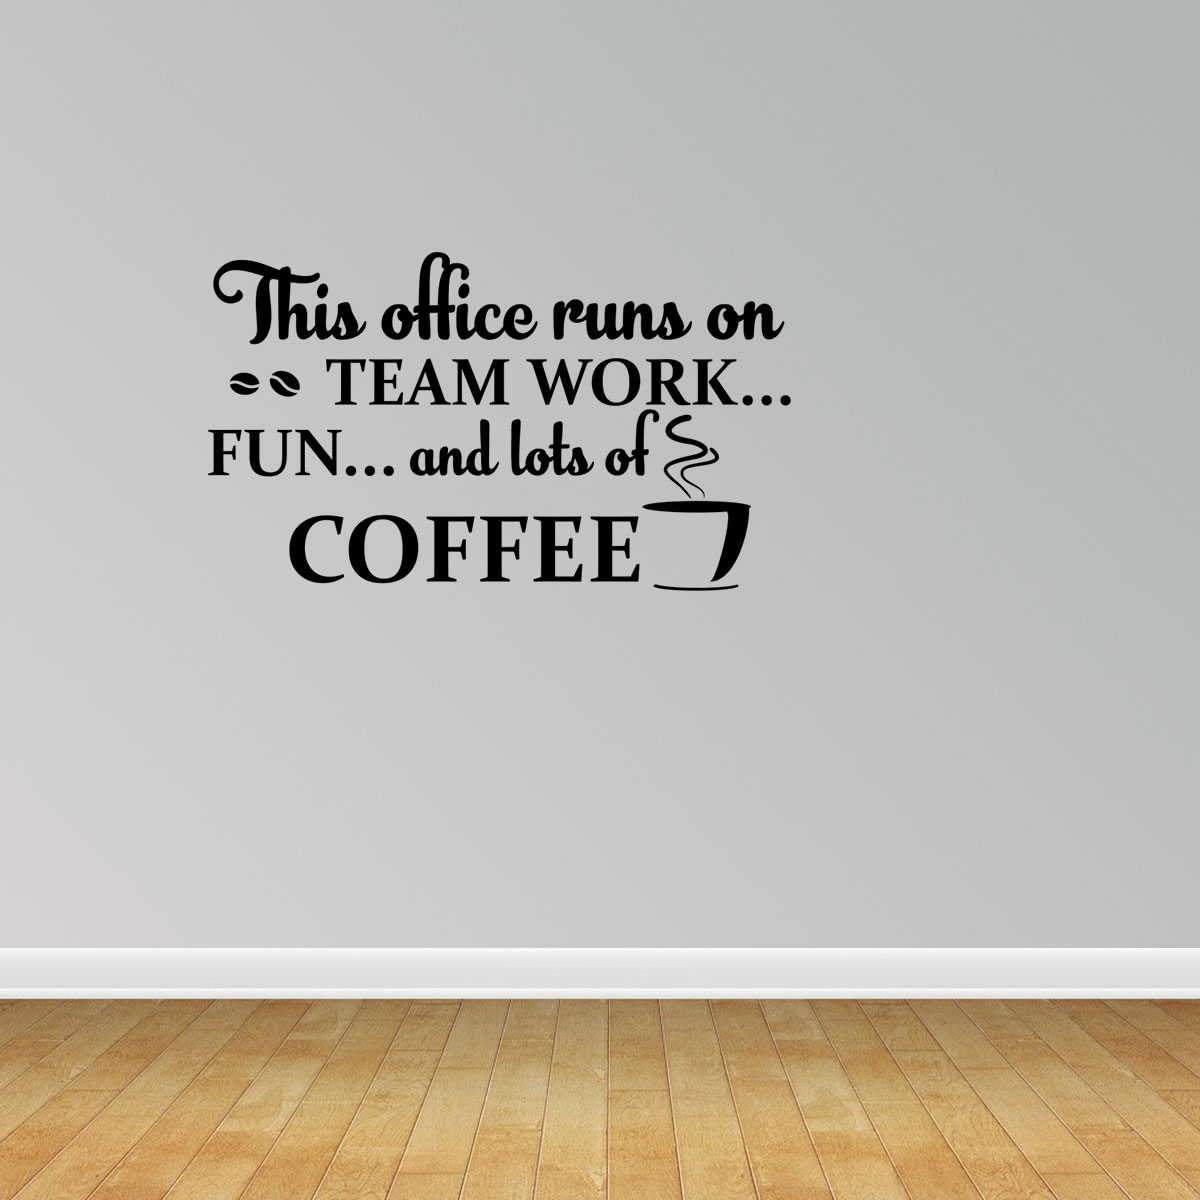 Office Runs On Teamwork And Coffee Break Room Decal Vinyl Wall Decals  Office Decal PC155